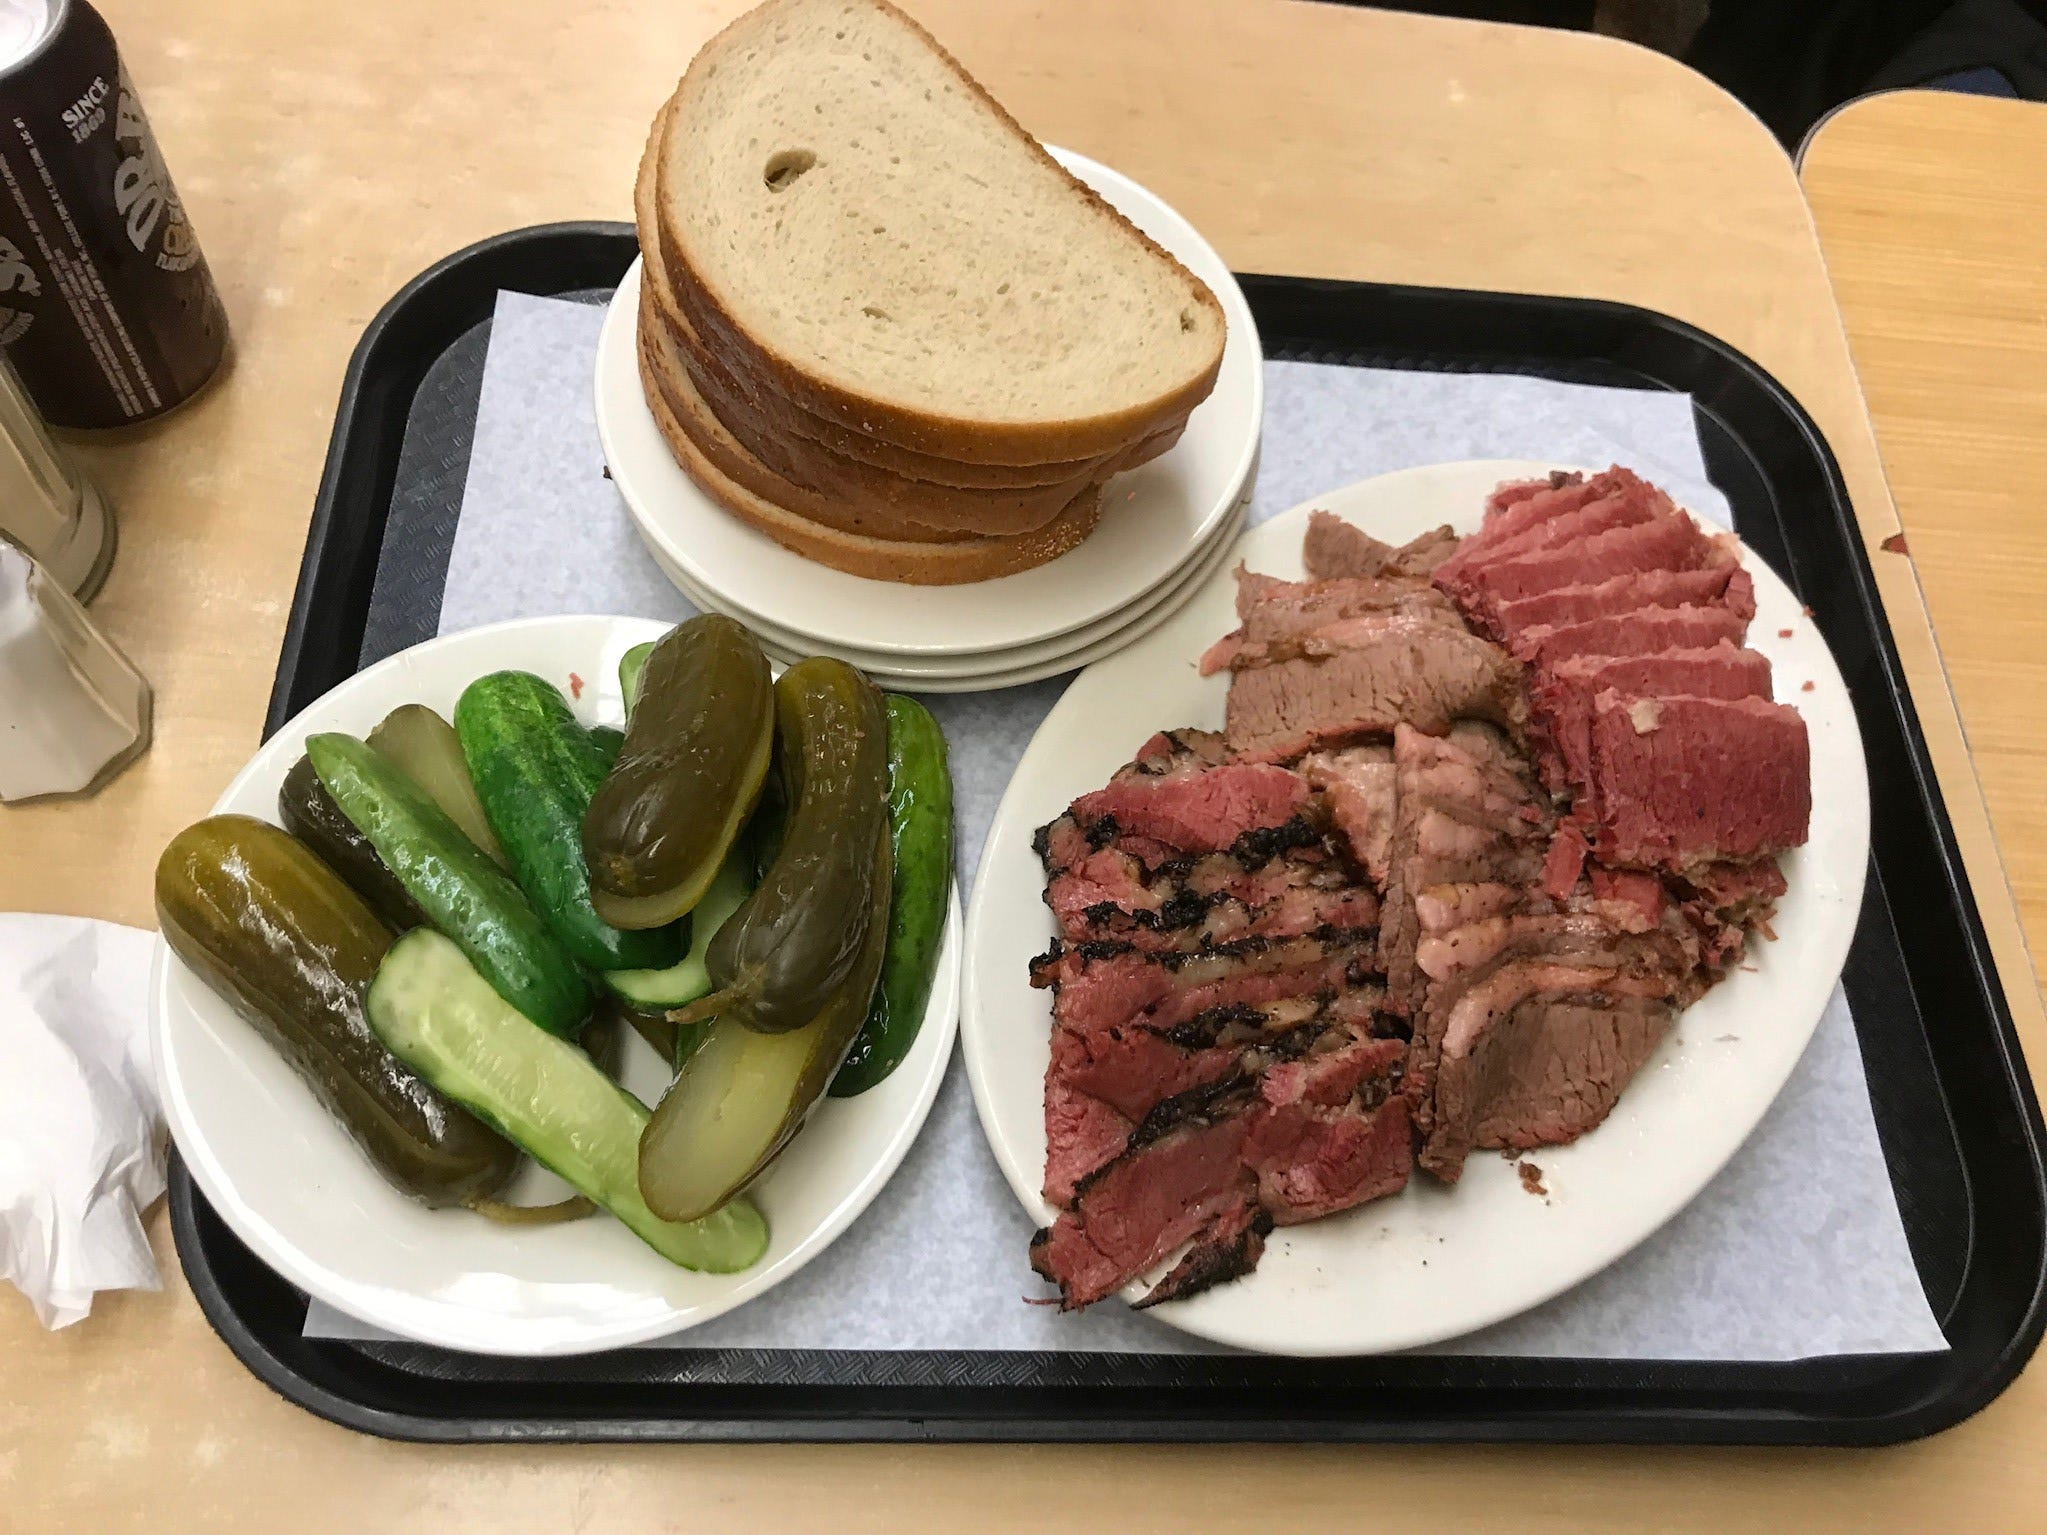 Many out-of-towners don't realize that instead of picking a single sandwich, you can opt for a shareable meat platter and make your own, trying all the specialties. This is pastrami (left), beef brisket (center) and corned beef (right) with a complimentary side of pickles and generous stack of rye bread.